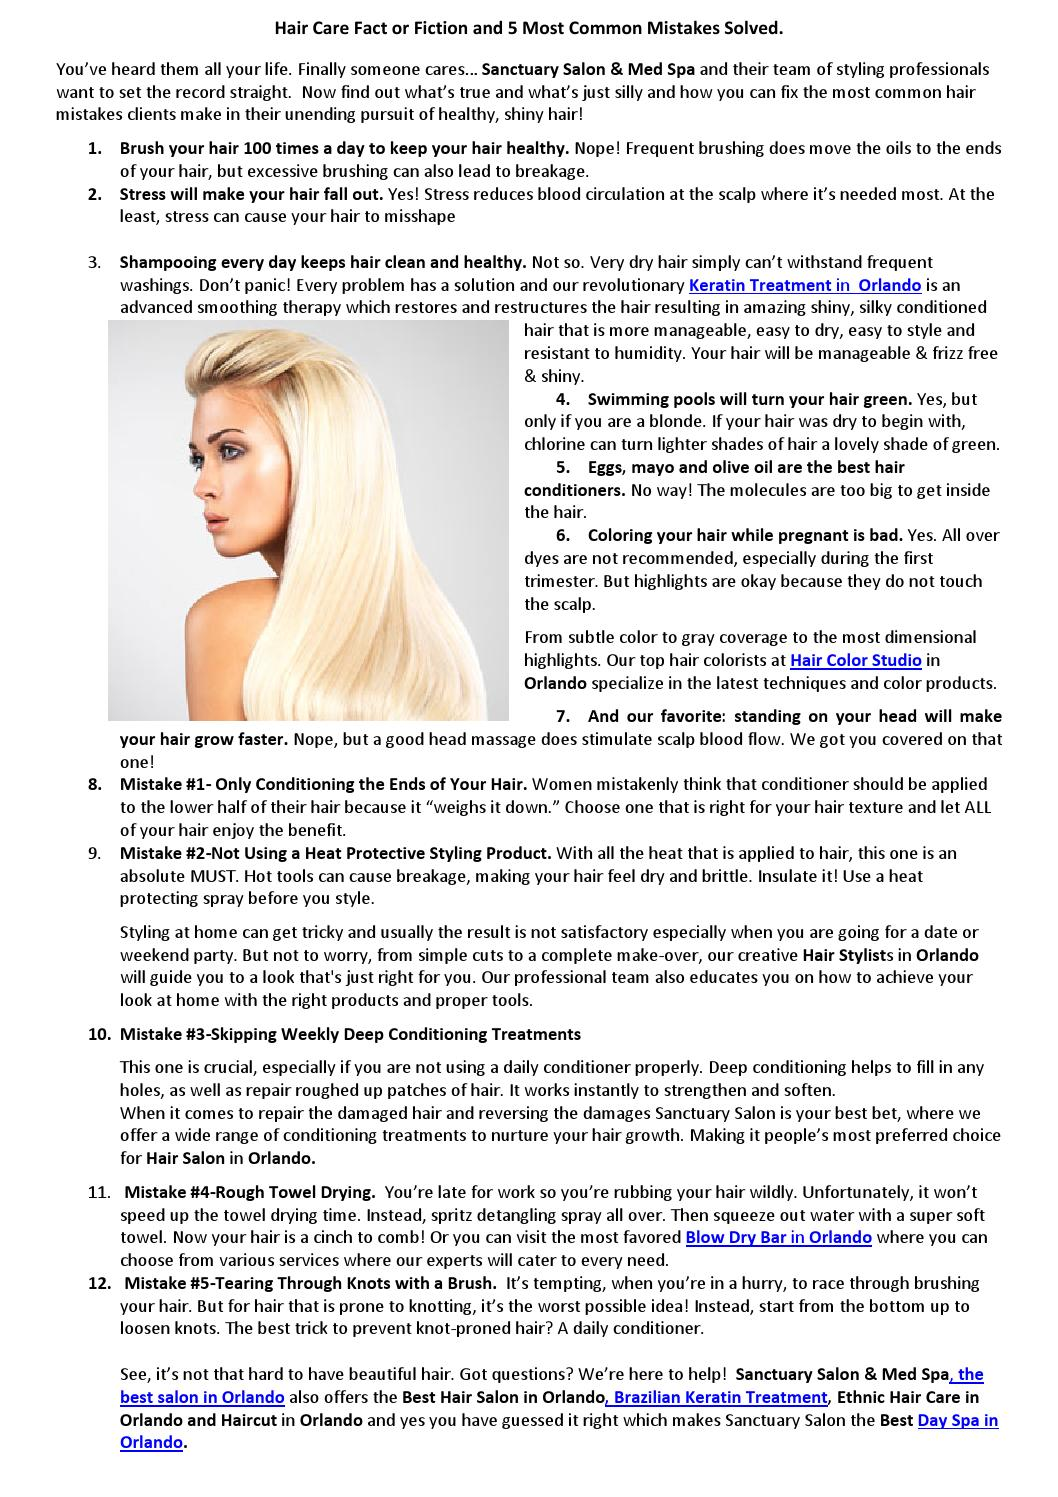 Hair Care Fact Or Fiction And 5 Most Common Mistakes Solved By